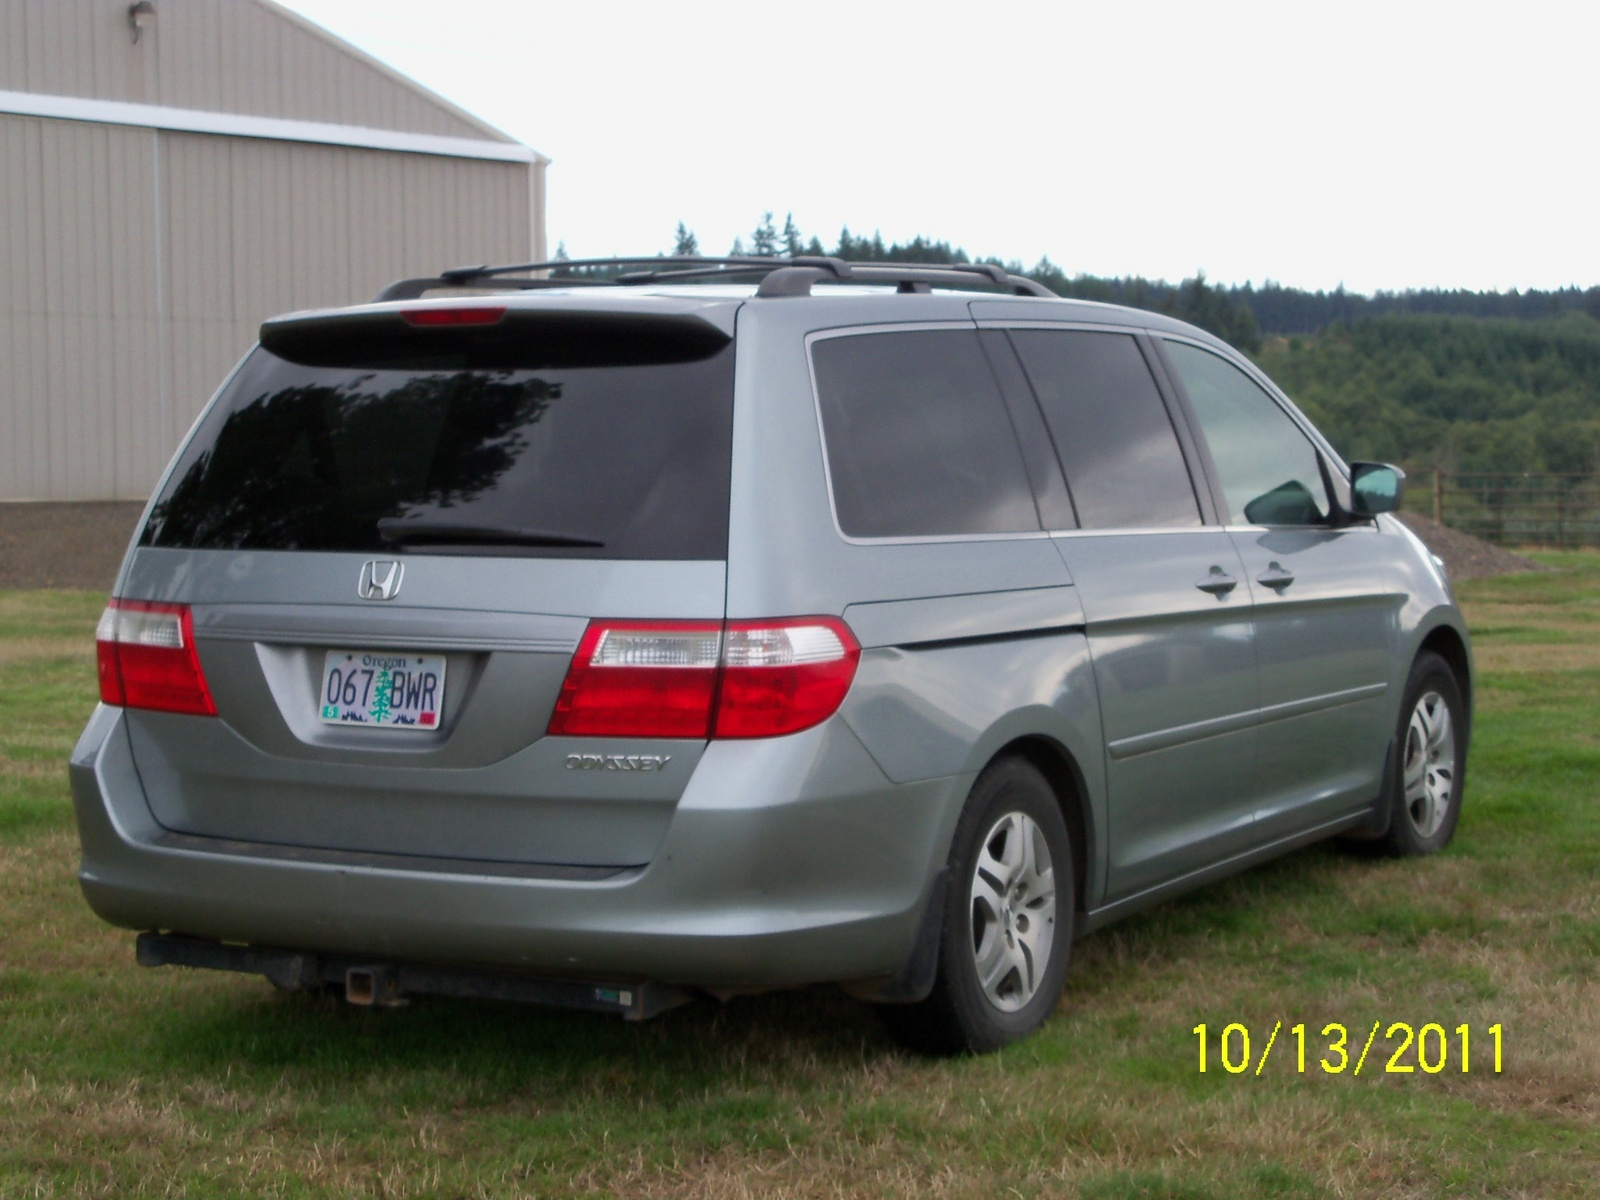 Used 2015 Honda Odyssey Features Specs Edmunds Images Of Home Design 2011 Ridgeline Fuse Box Related Image With Review Ratings Prices